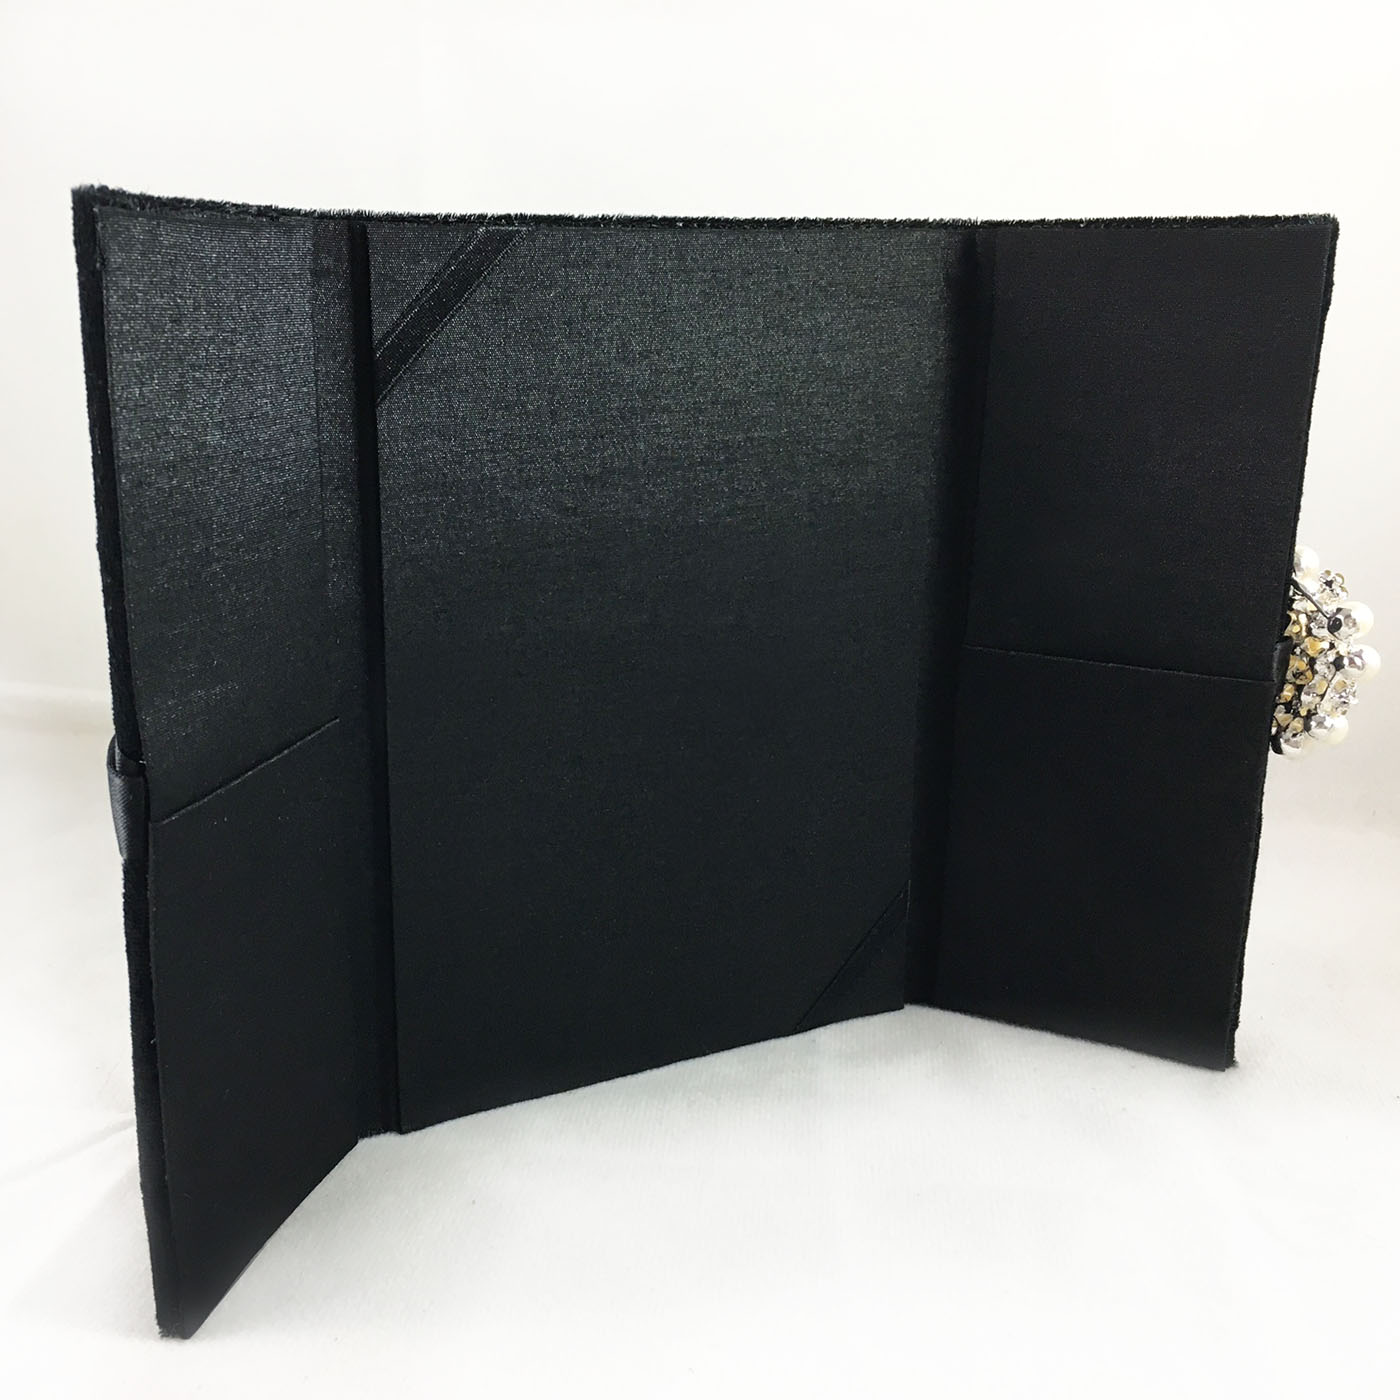 black velvet and silk invitation with pearl brooch embellishment